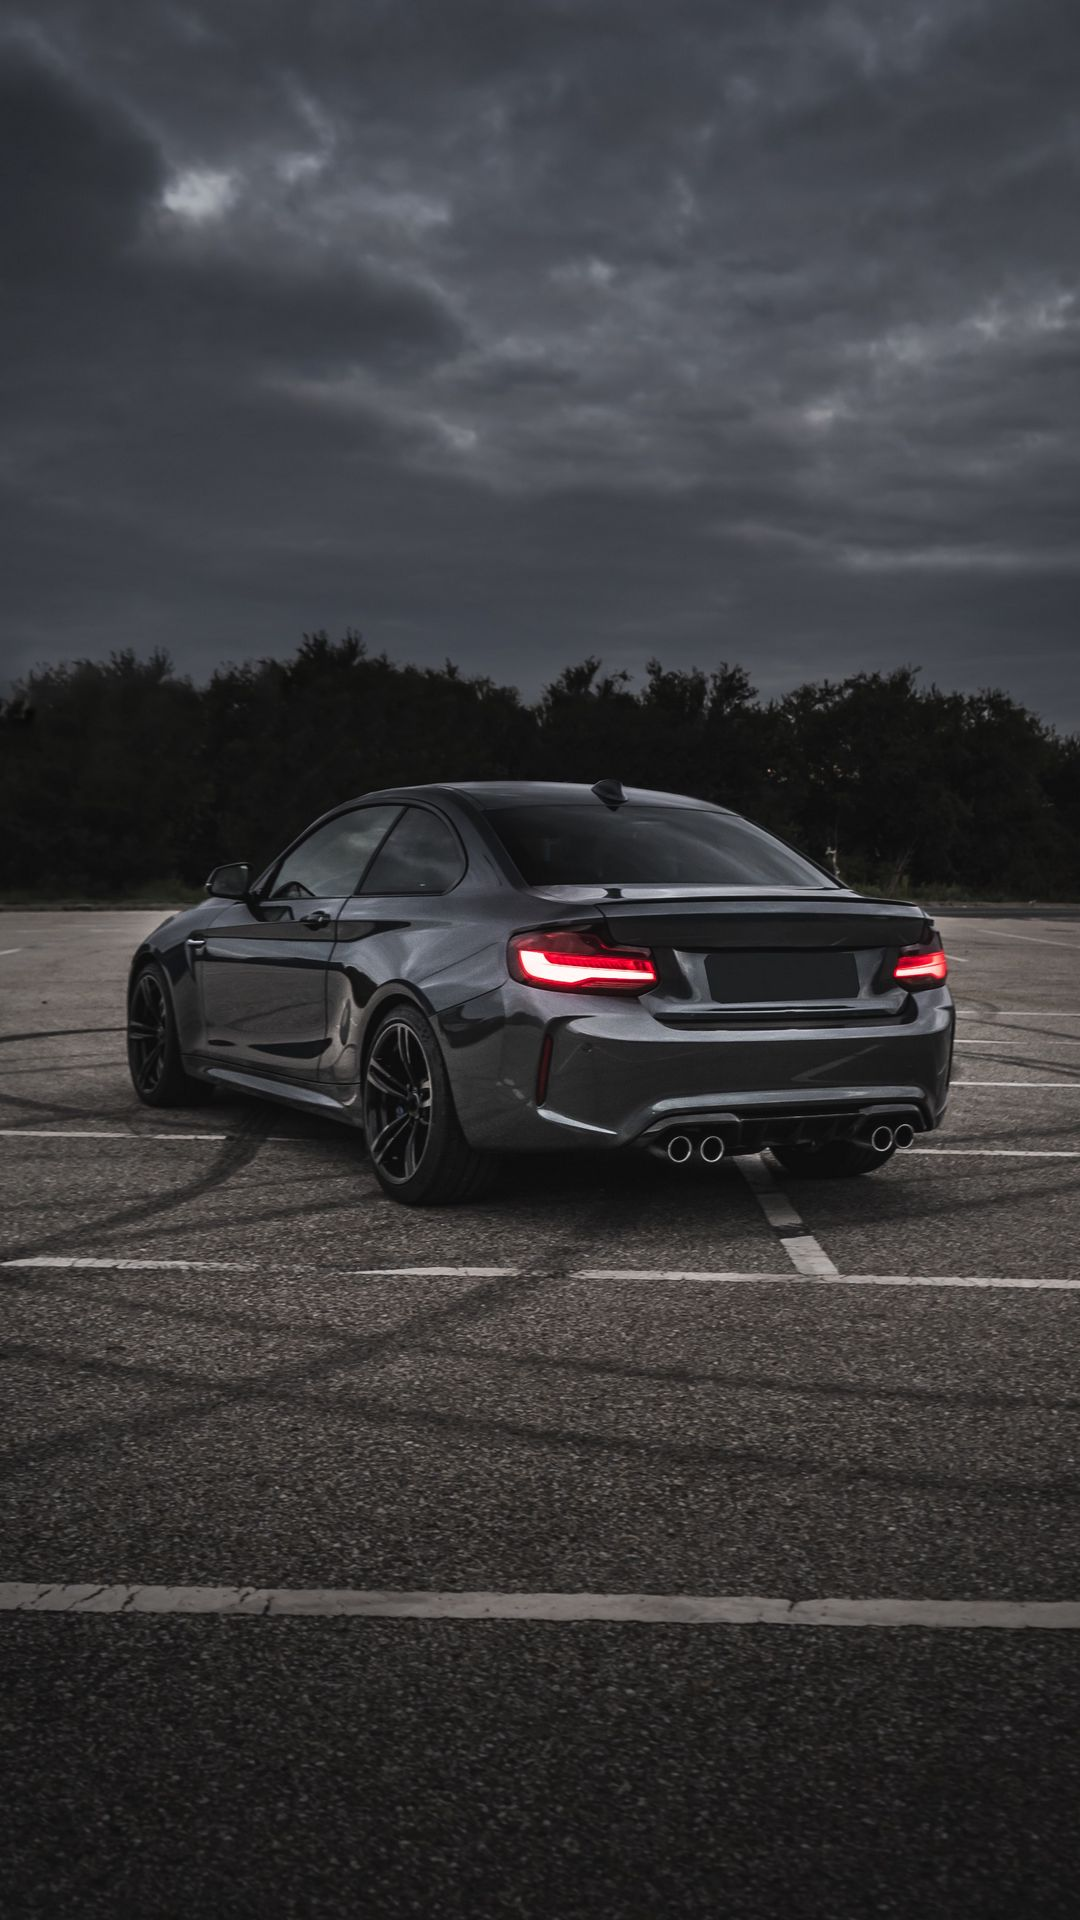 BMW M3 Sport Black Edition Wallpapers Free Download